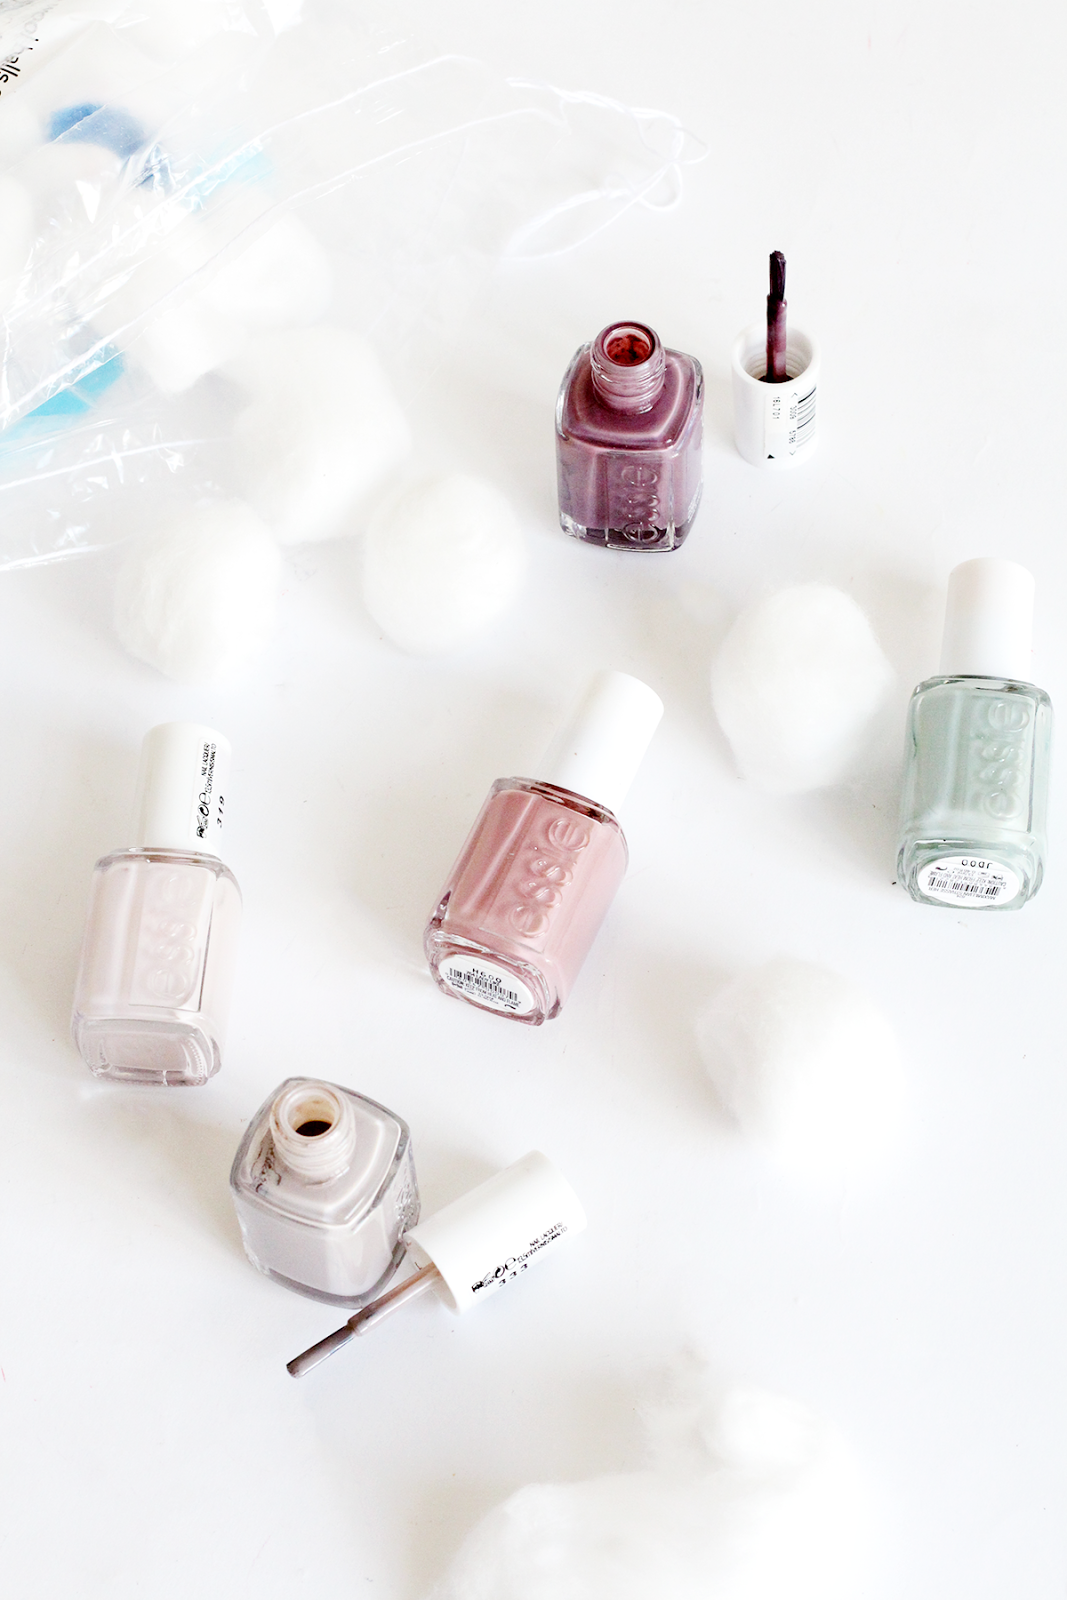 Essie Spring Shades - Urban Jungle, Lady Like, Take It Outside, Merino Cool and Maximillian Strasse-Her